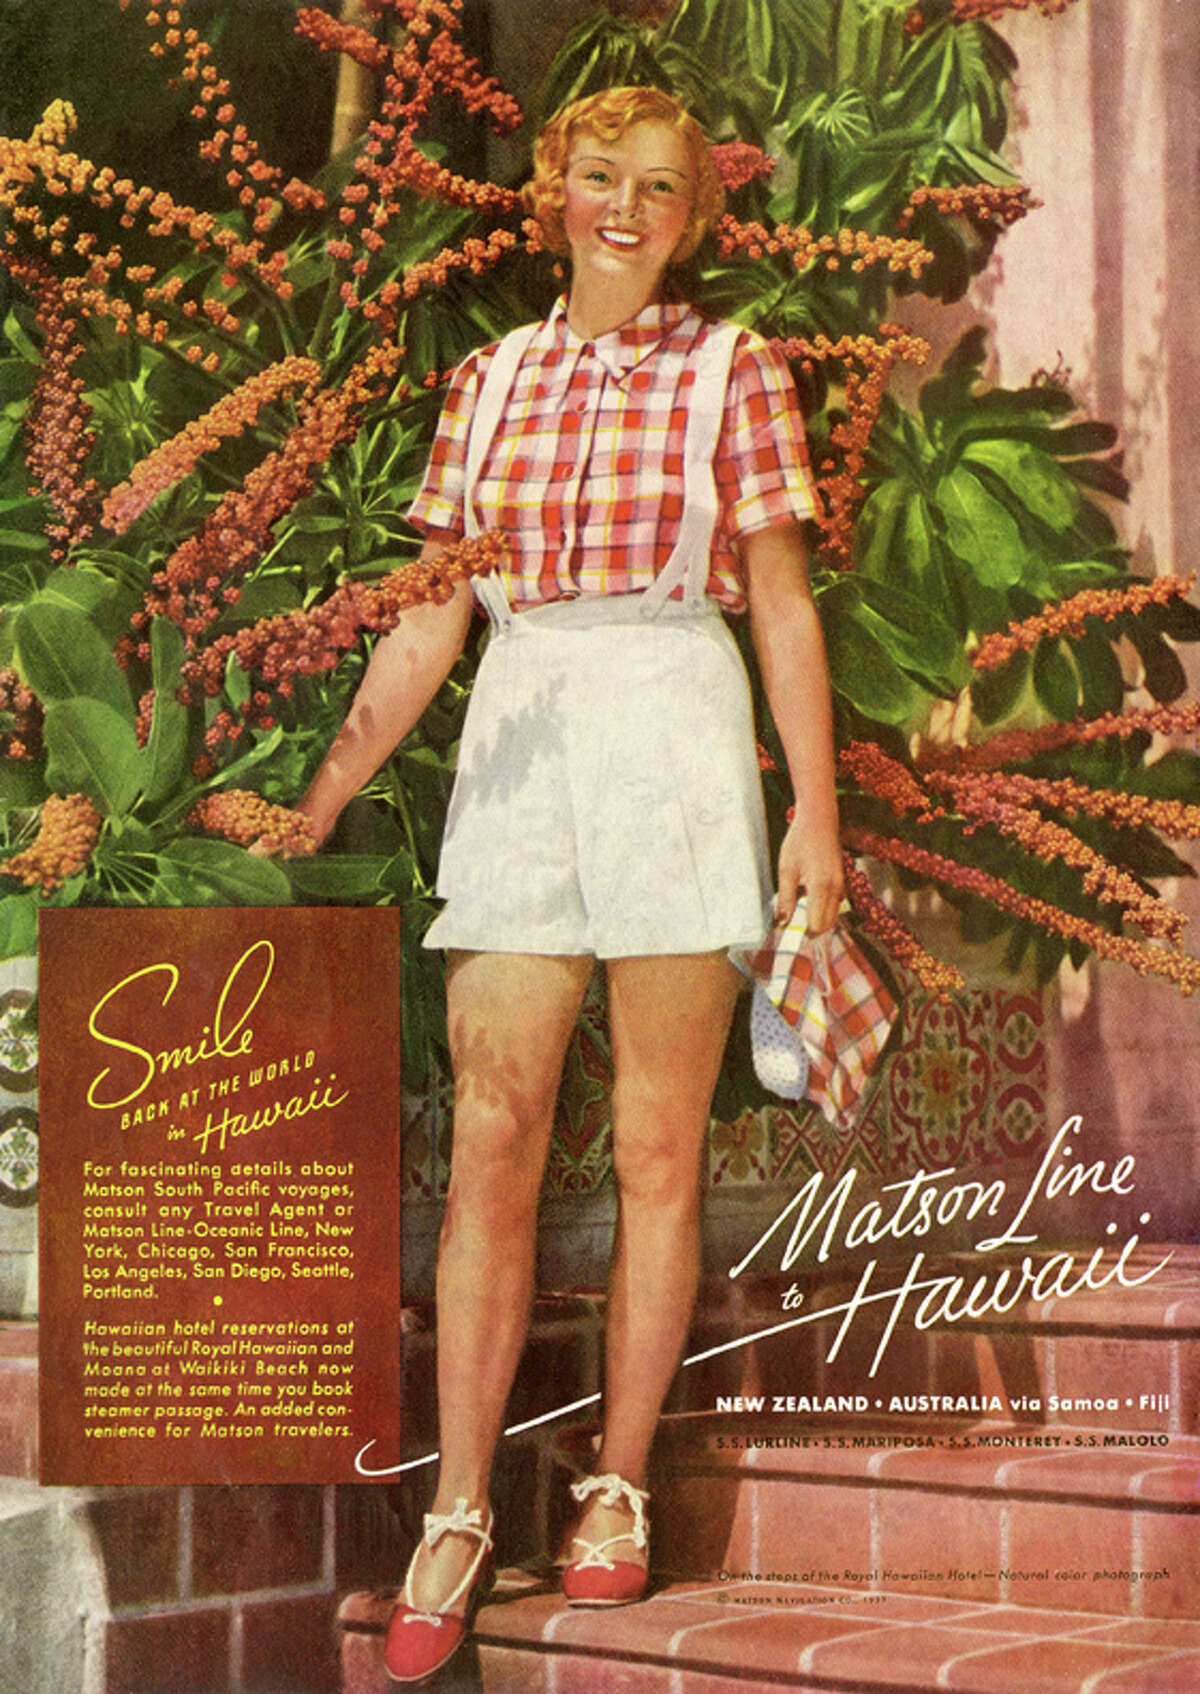 Smile back at the world: Renowned photographer Edward Steichen shot this image of a smiling tourist on the steps of the Royal Hawaiian Hotel for a 1937 Matson campaign. Attractive women, both tourists and locals, featured prominently in ads of the day. Now called just the Royal Hawaiian, the luxury hotel on Waikiki Beach has a free exhibition of Matson travel posters and other memorabilia on display through April 2016.